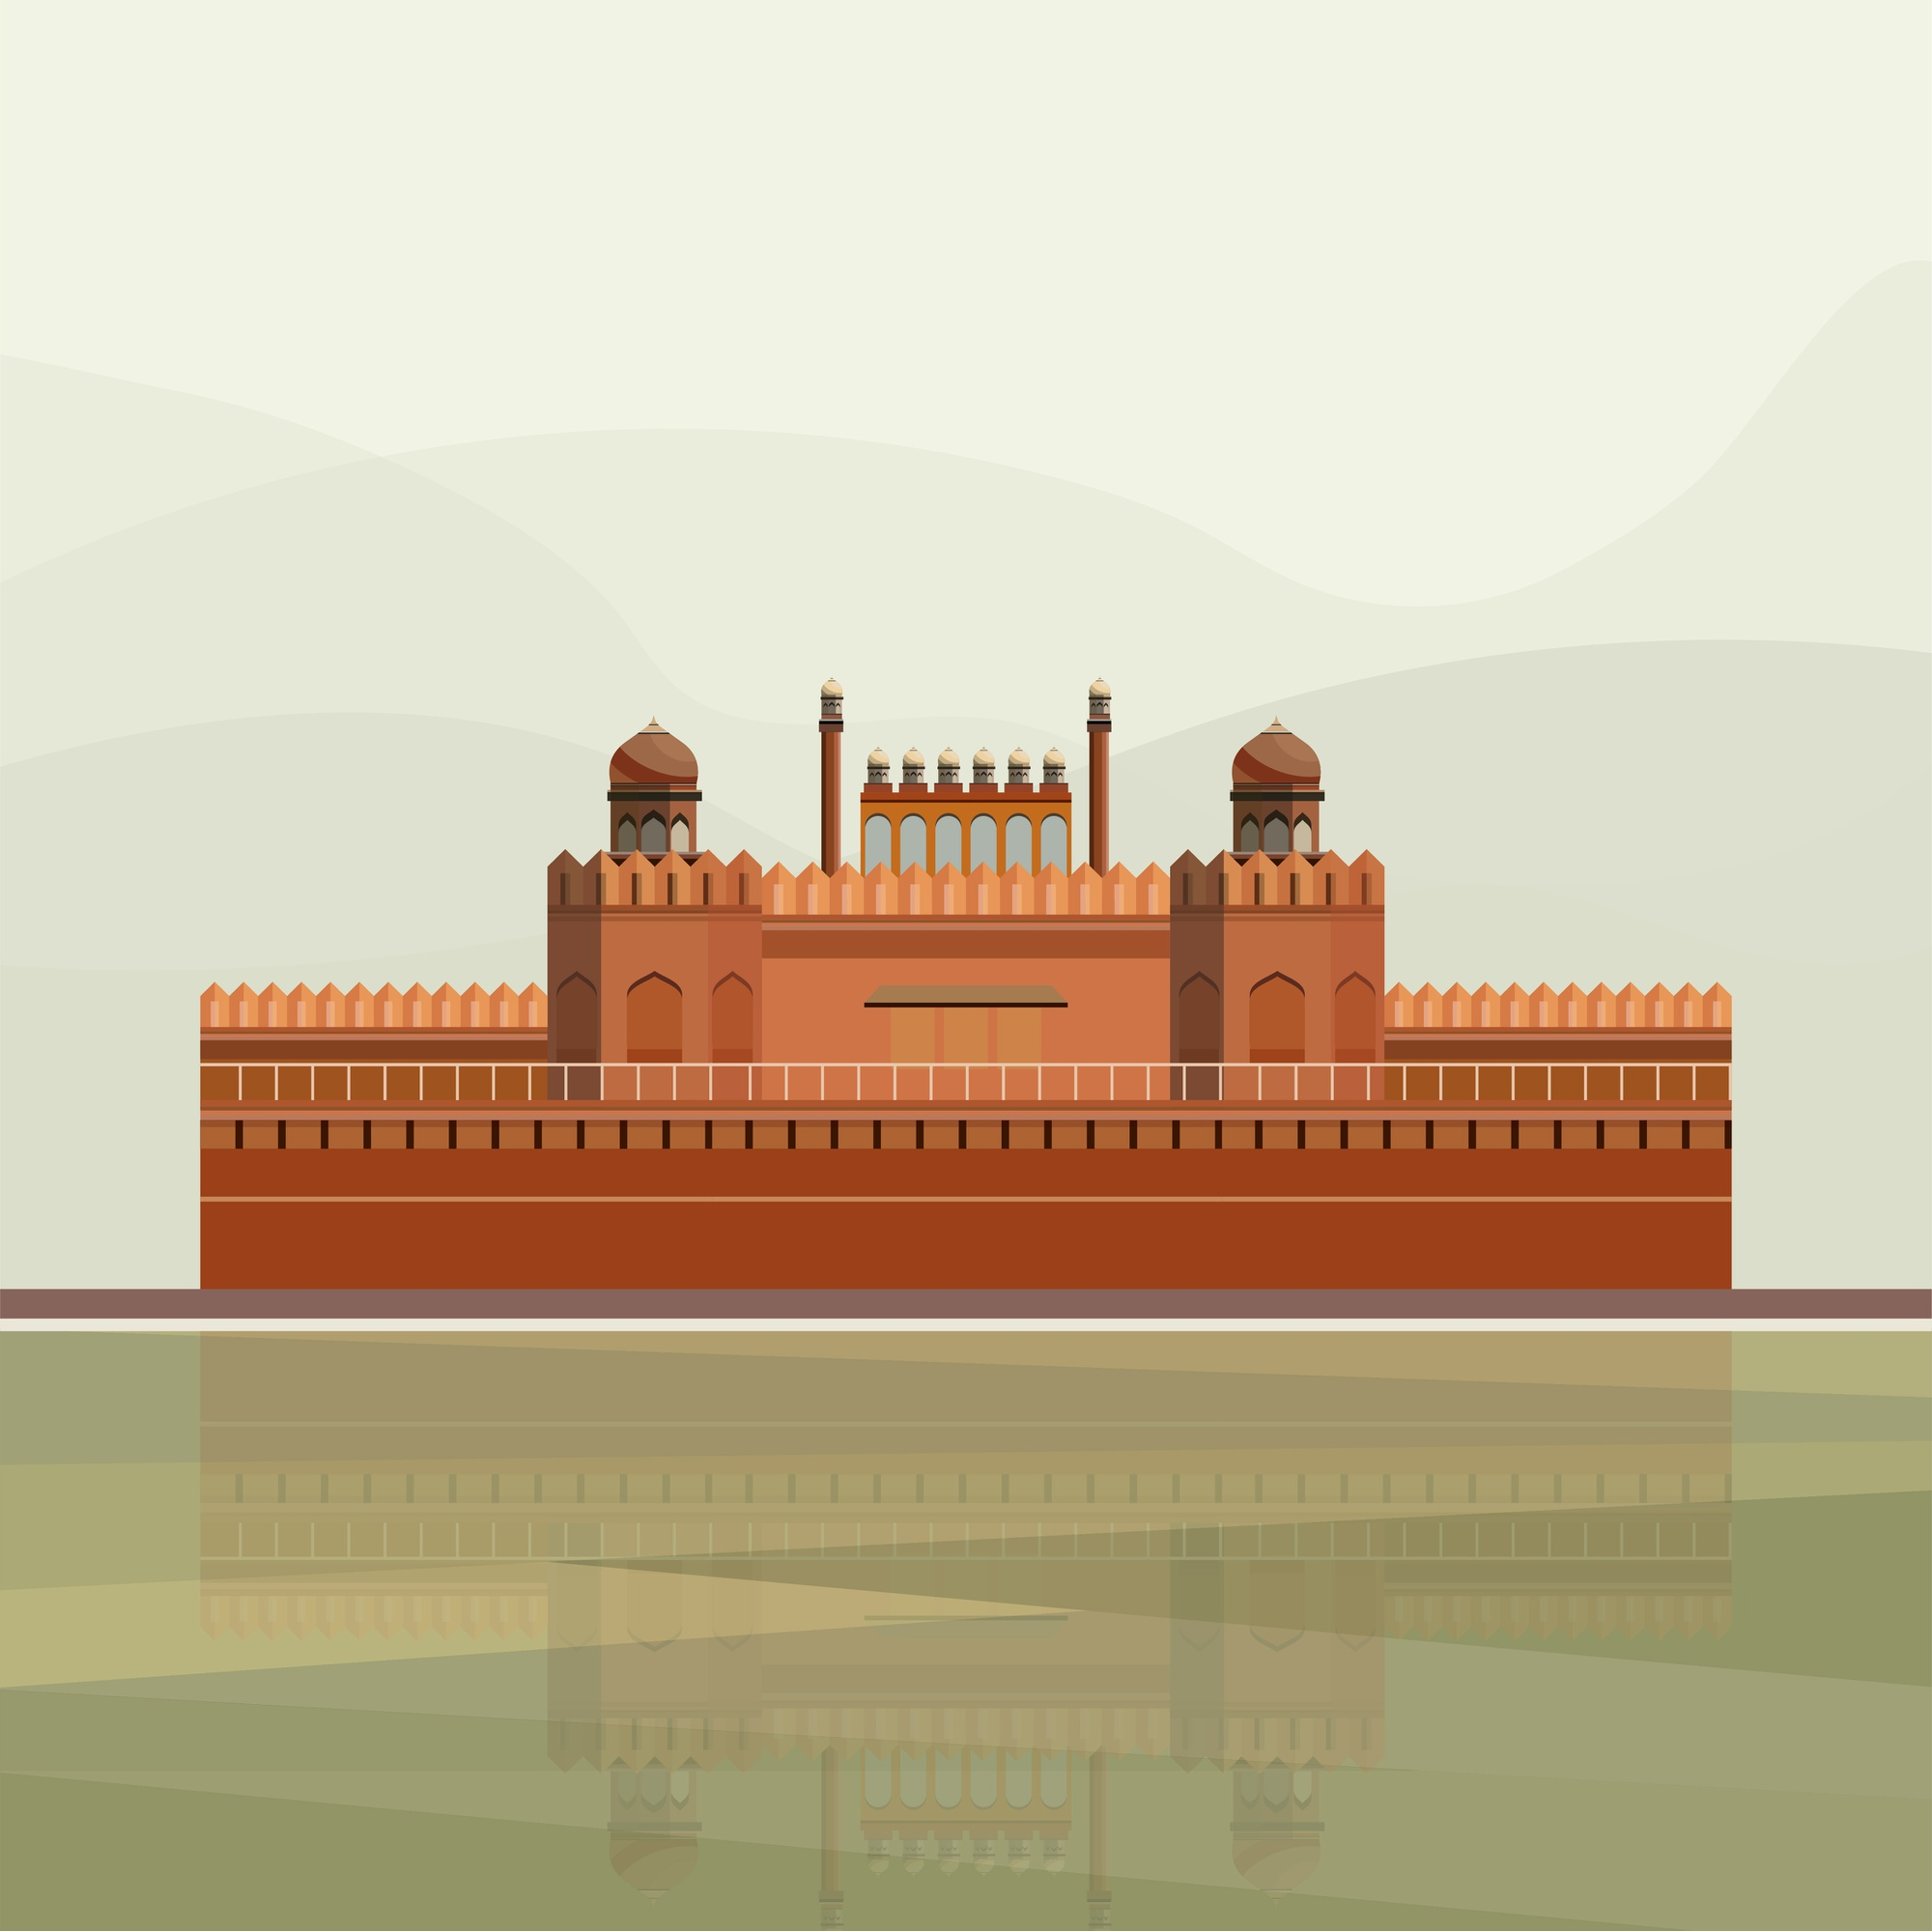 Illustration of The Red Fort